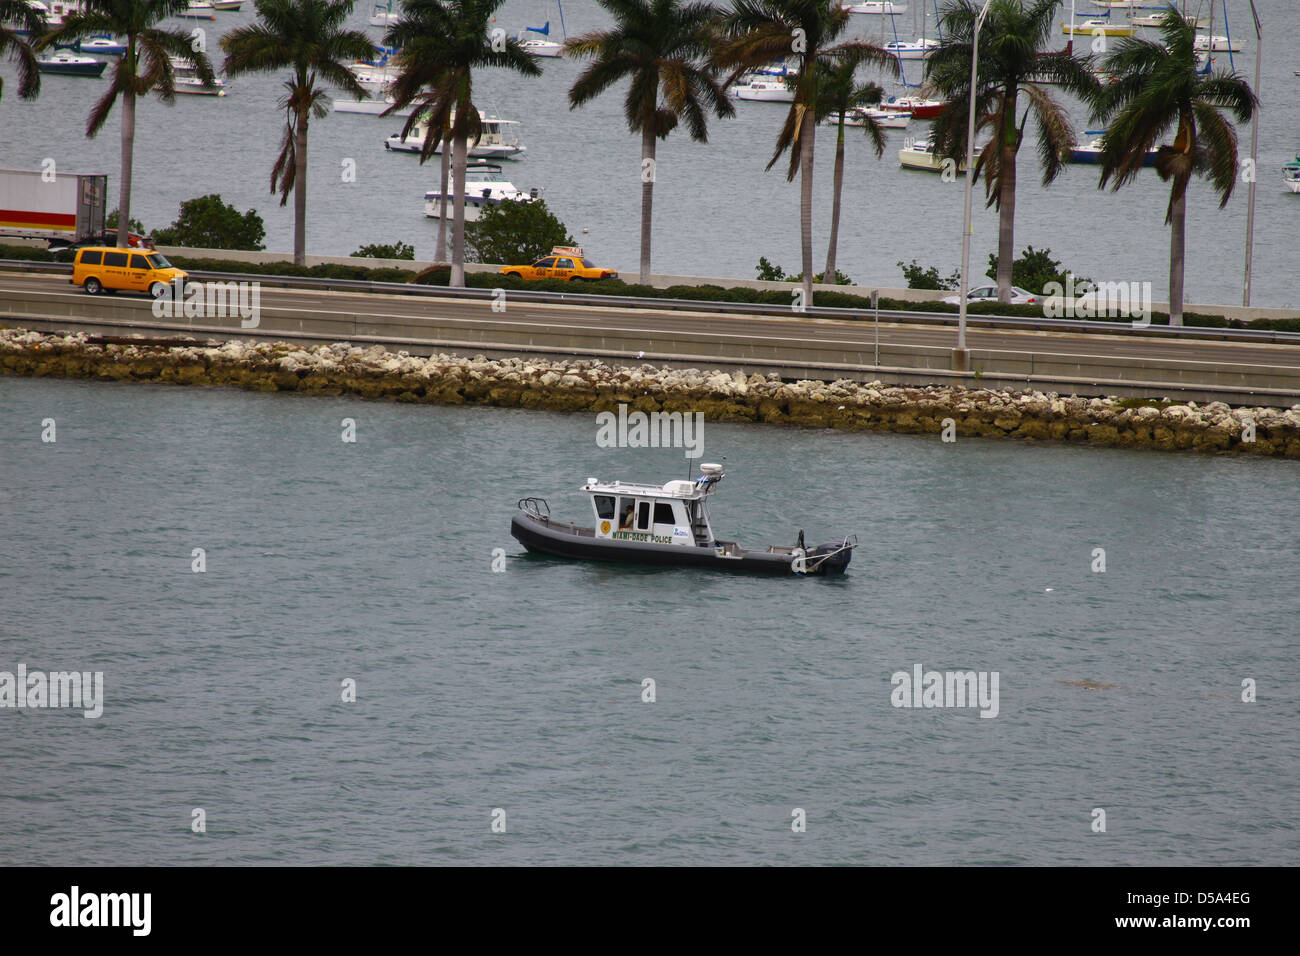 A Miami-Dade Police boat patrolling the waters near the Port of Miami. - Stock Image